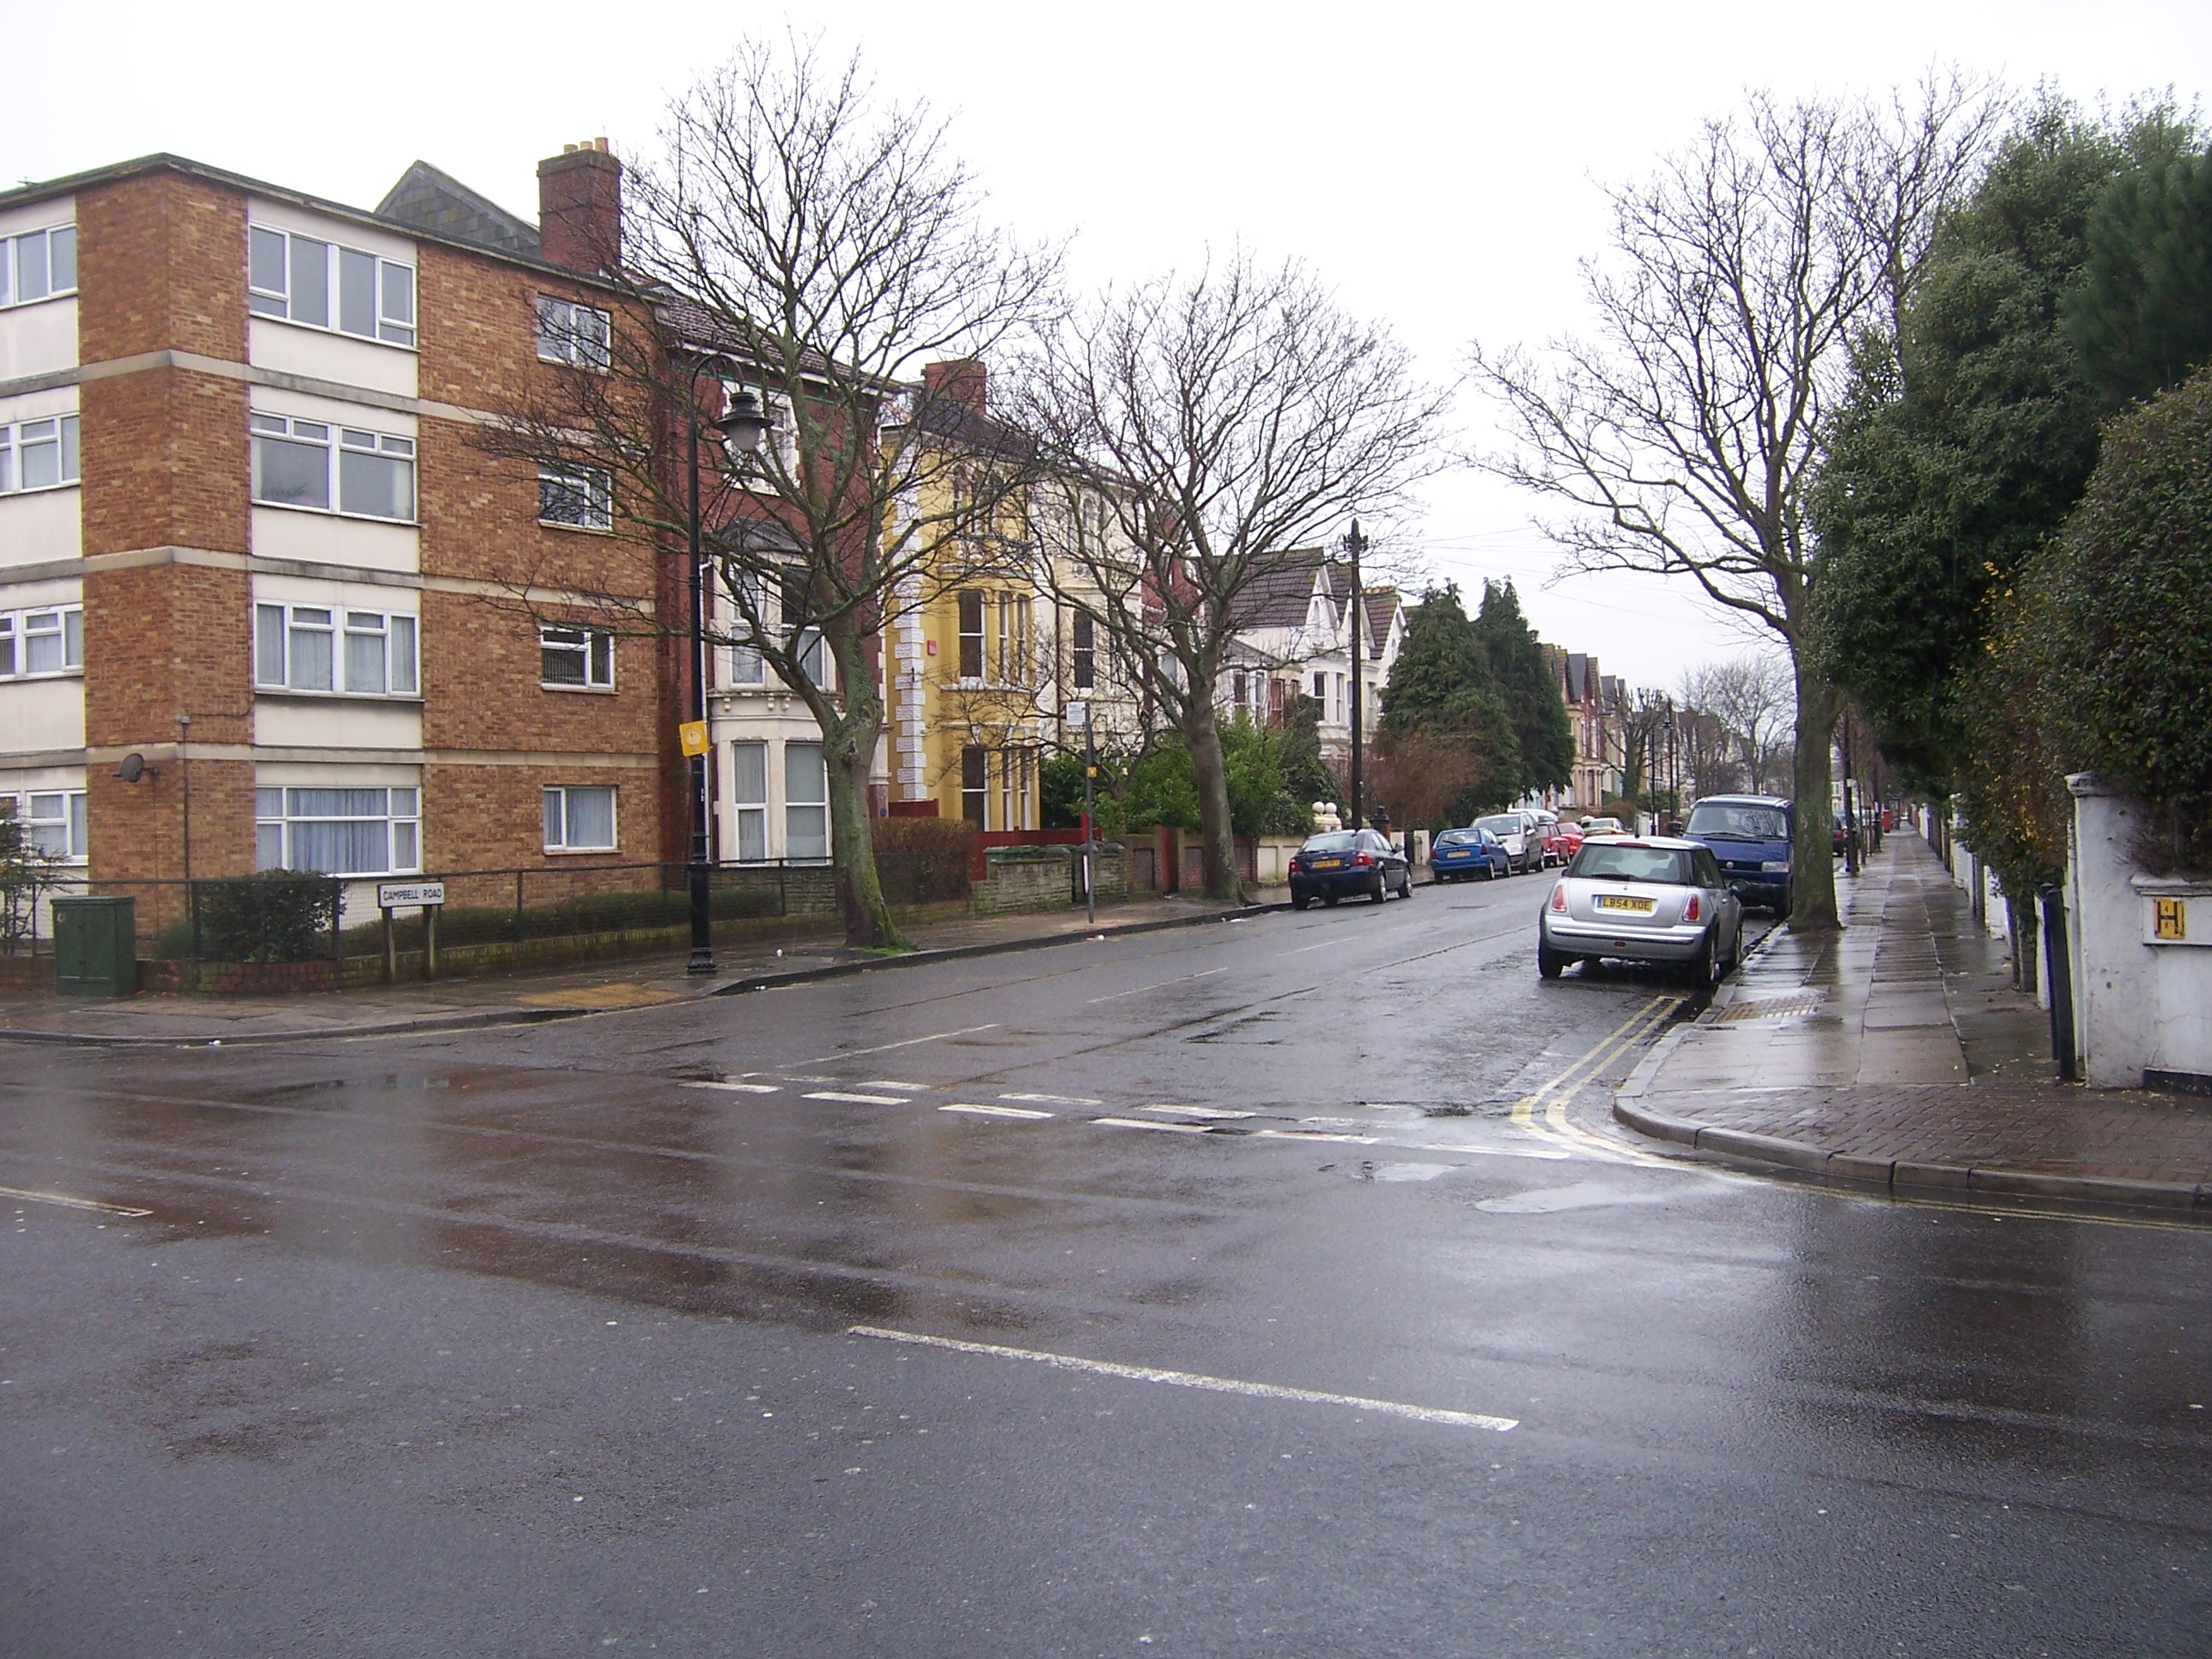 Junction_of_Cambell_Rd_and_Lawrence_Rd-Portsmouth_-_geograph.org.uk_-_1724430.jpg?profile=RESIZE_710x